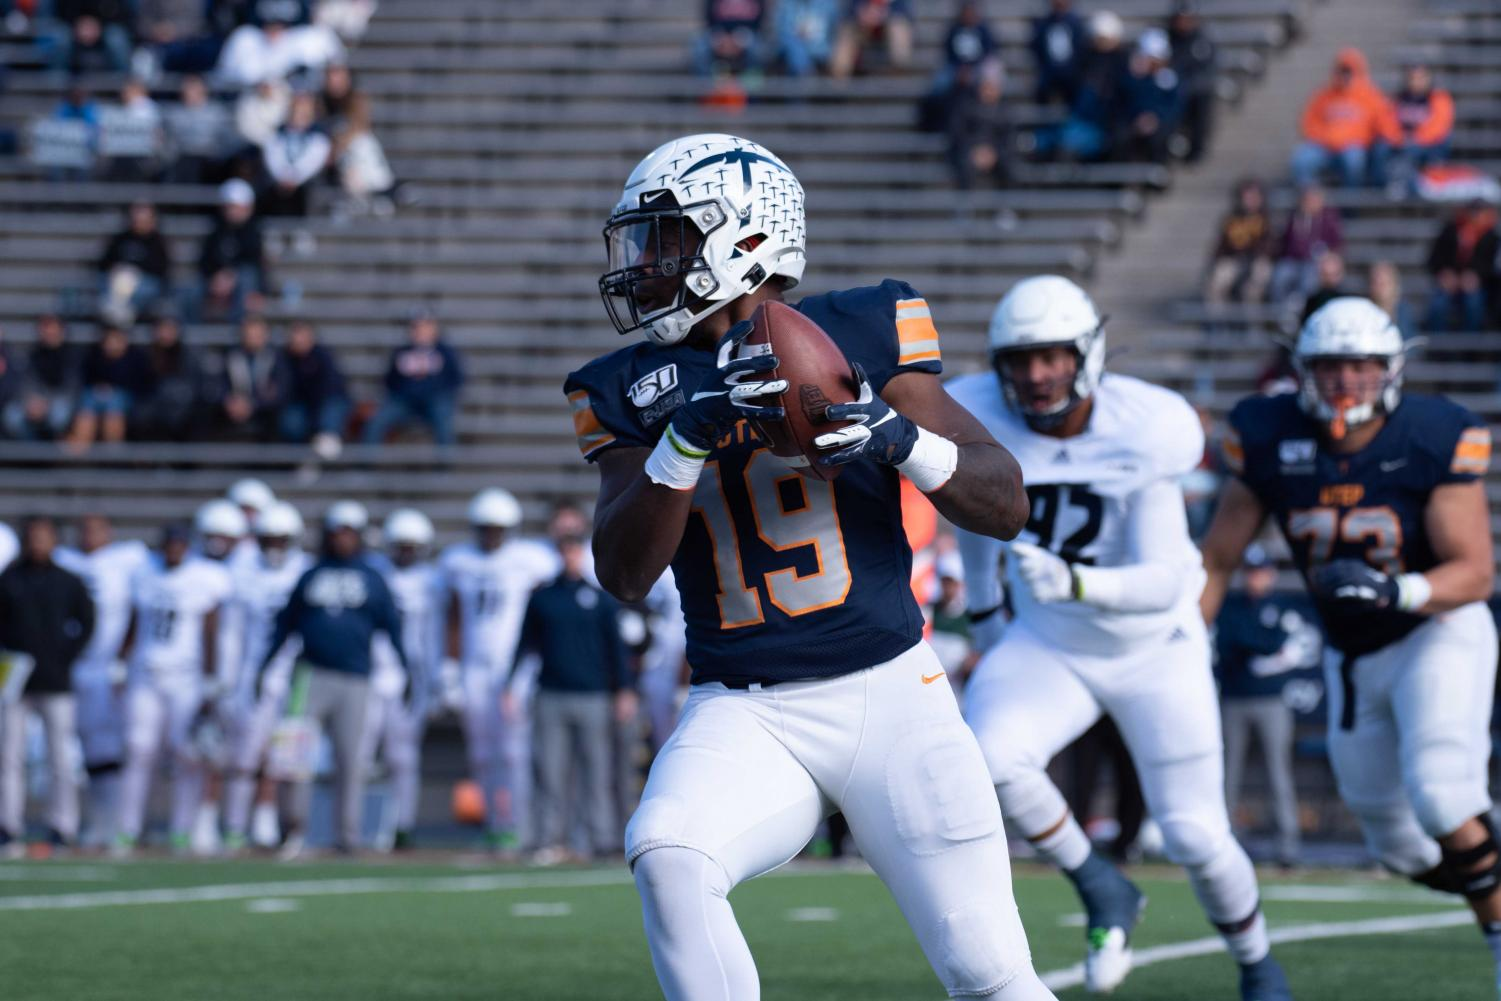 Senior Runningback Treyvon Hughes catches a screen pass and turns up field against the Rice Owls at the Sunbowl stadium.